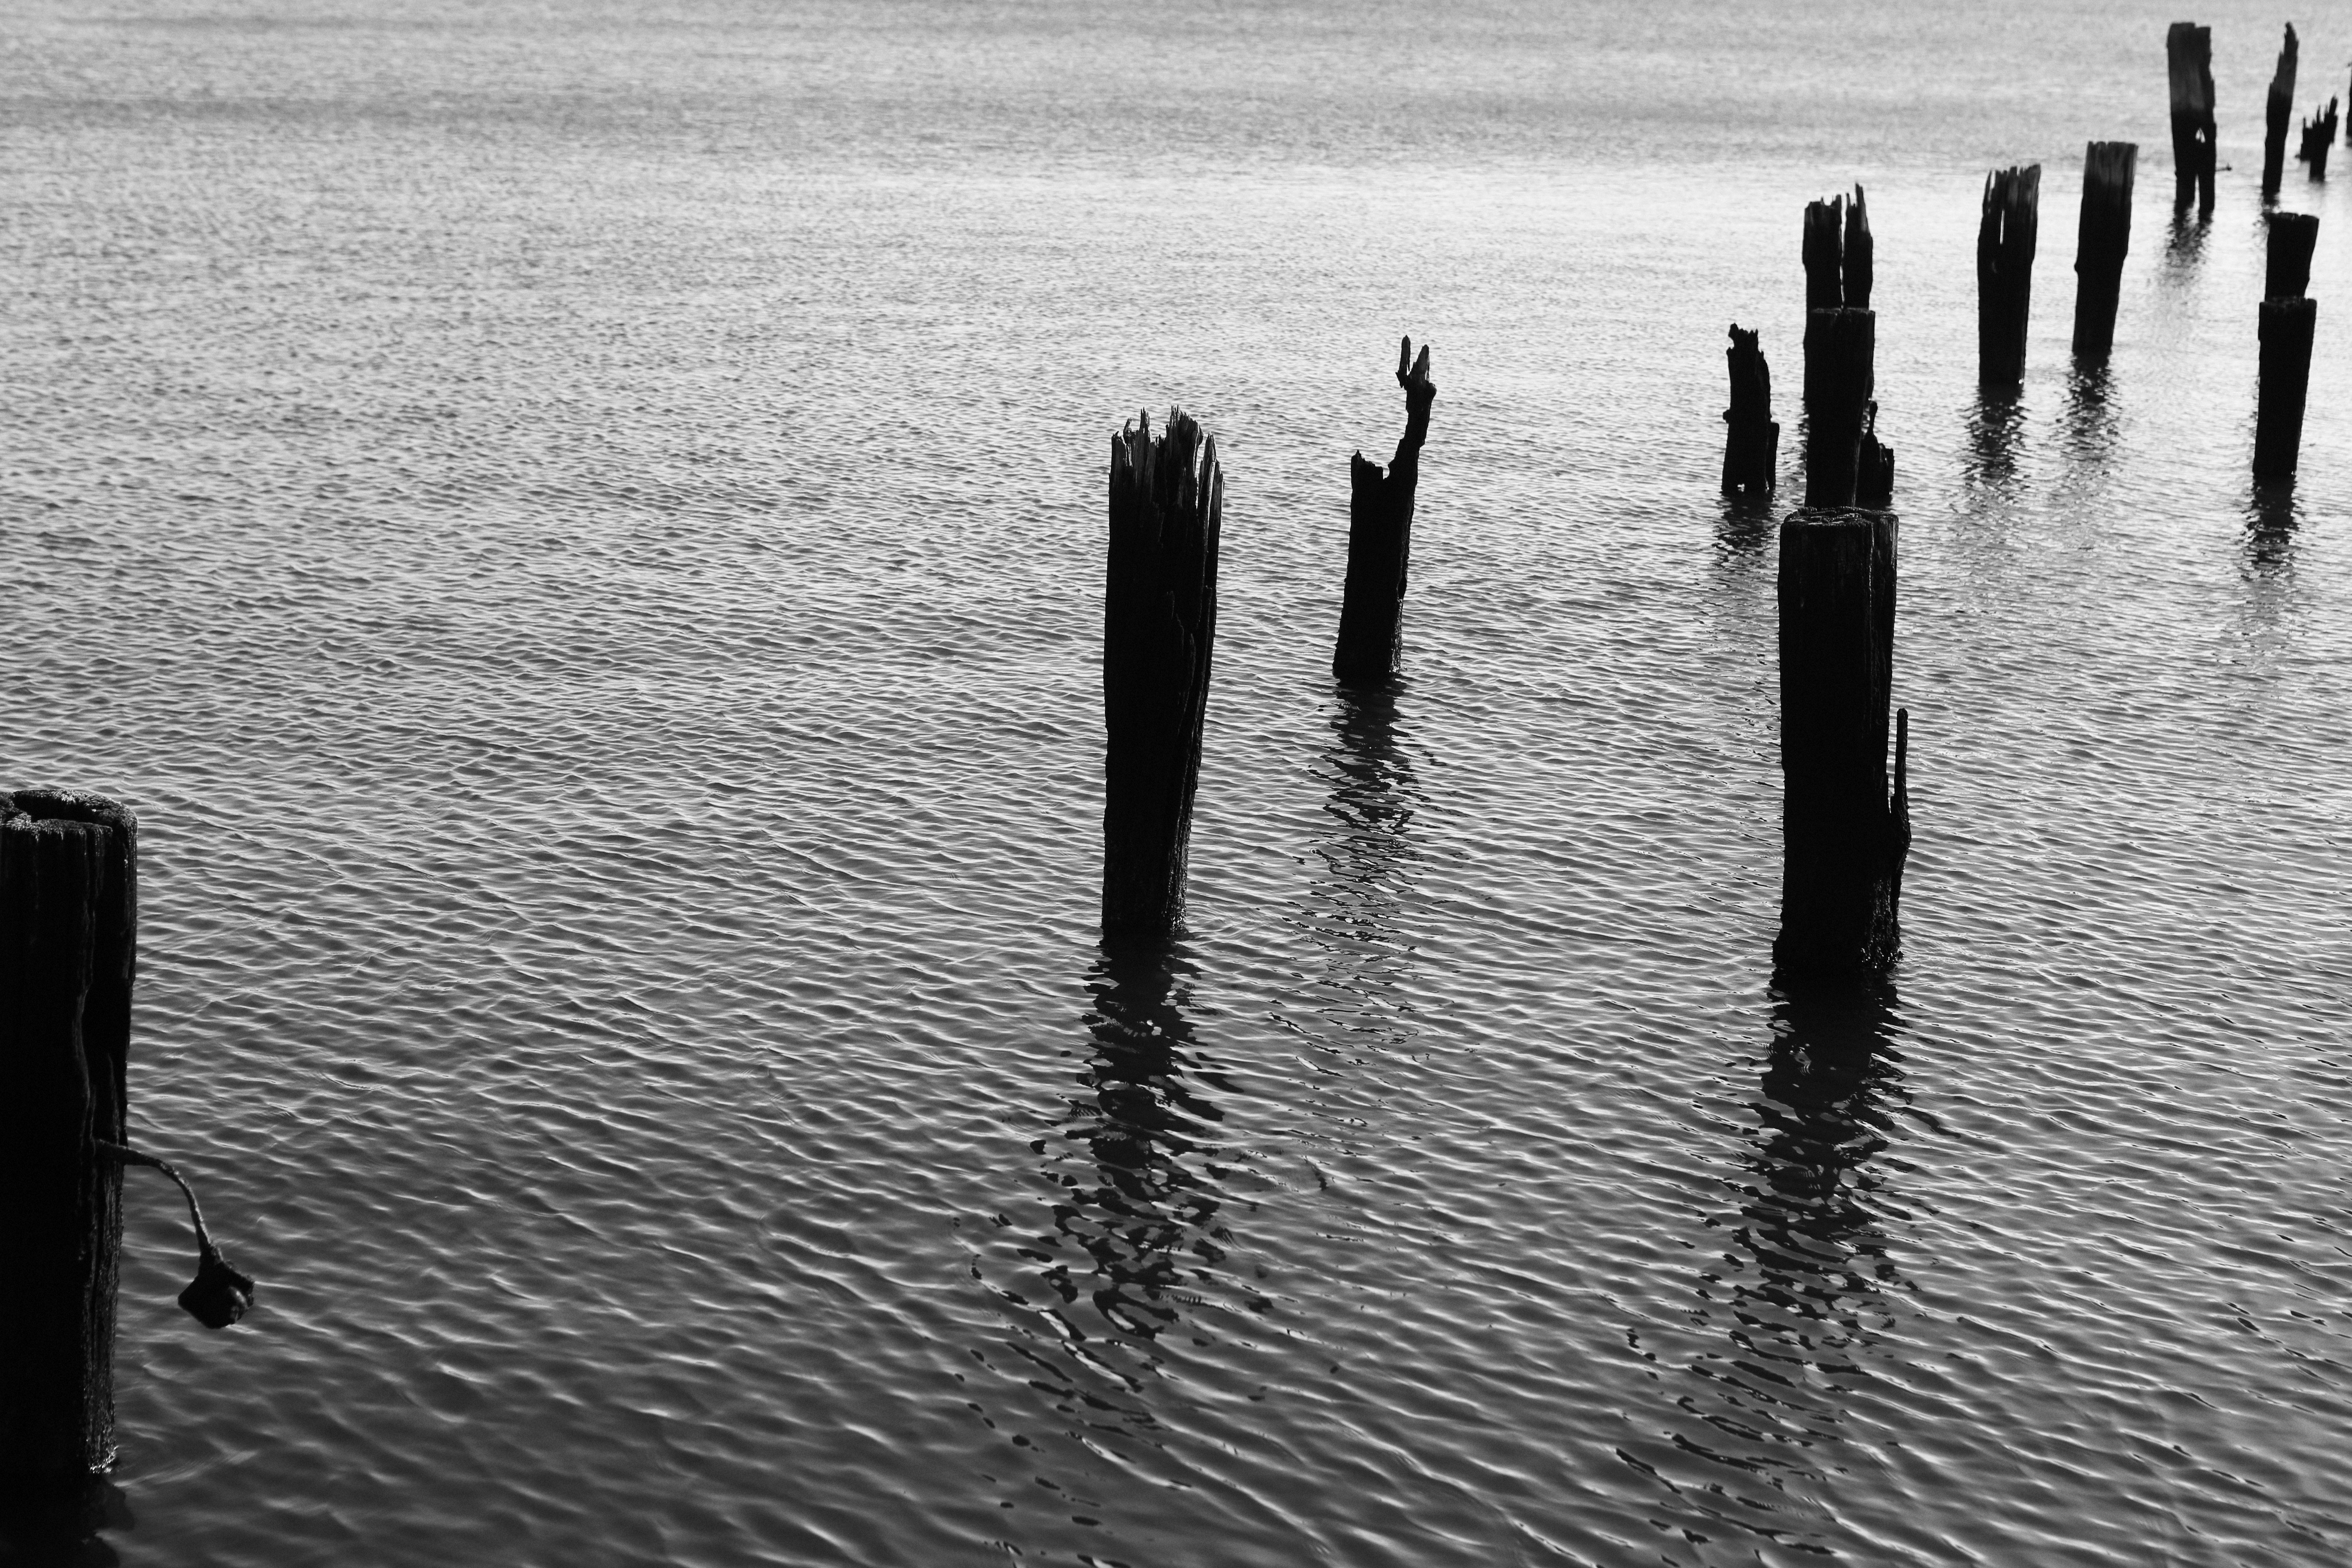 Trunk wooden pier, sea, lake, black and white, destroyed pier, old pier.